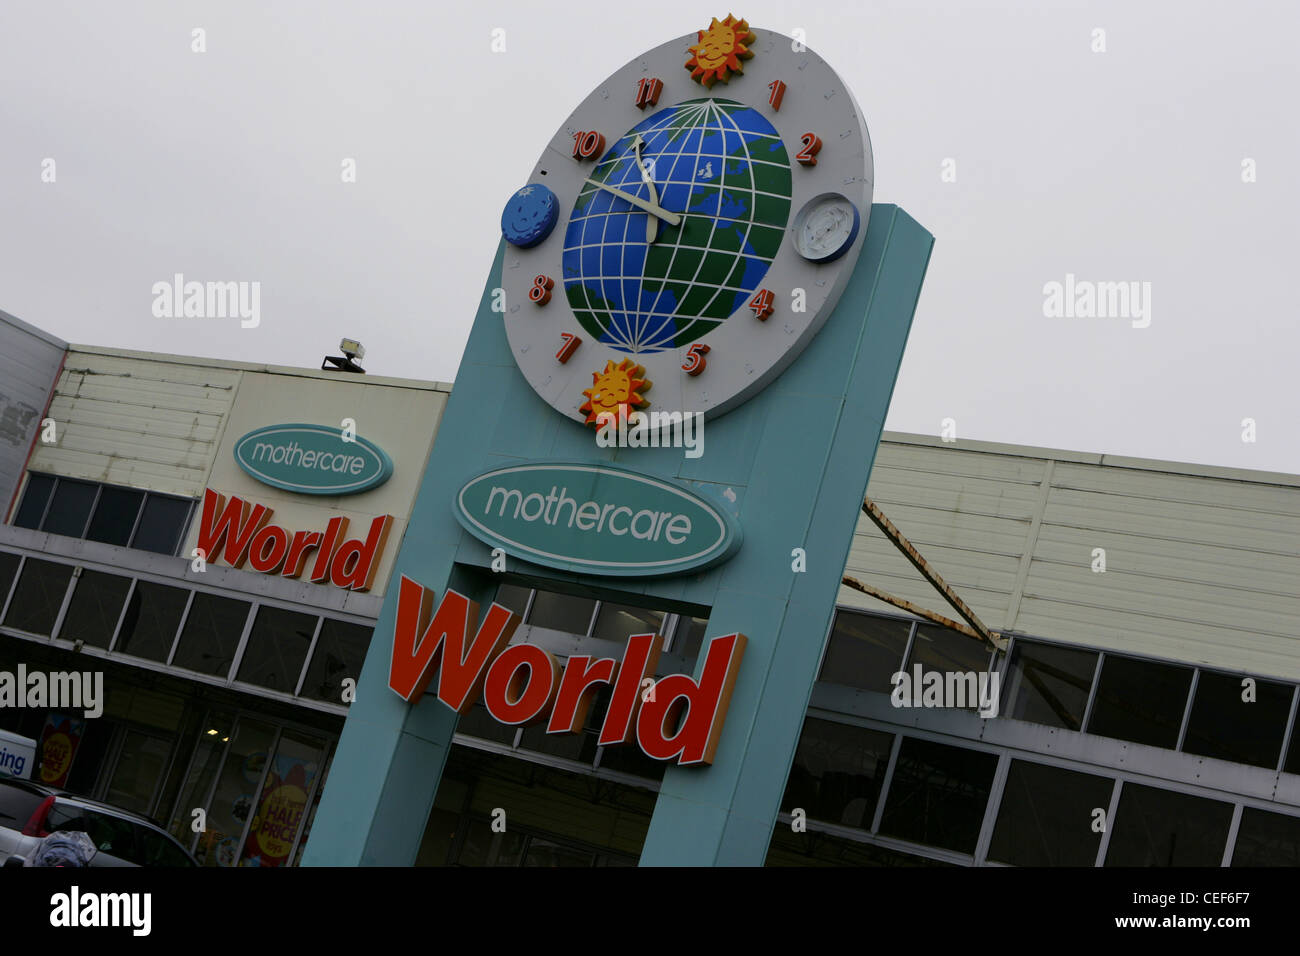 mothercare world, merry hill, west midlands, feb 2012 - Stock Image